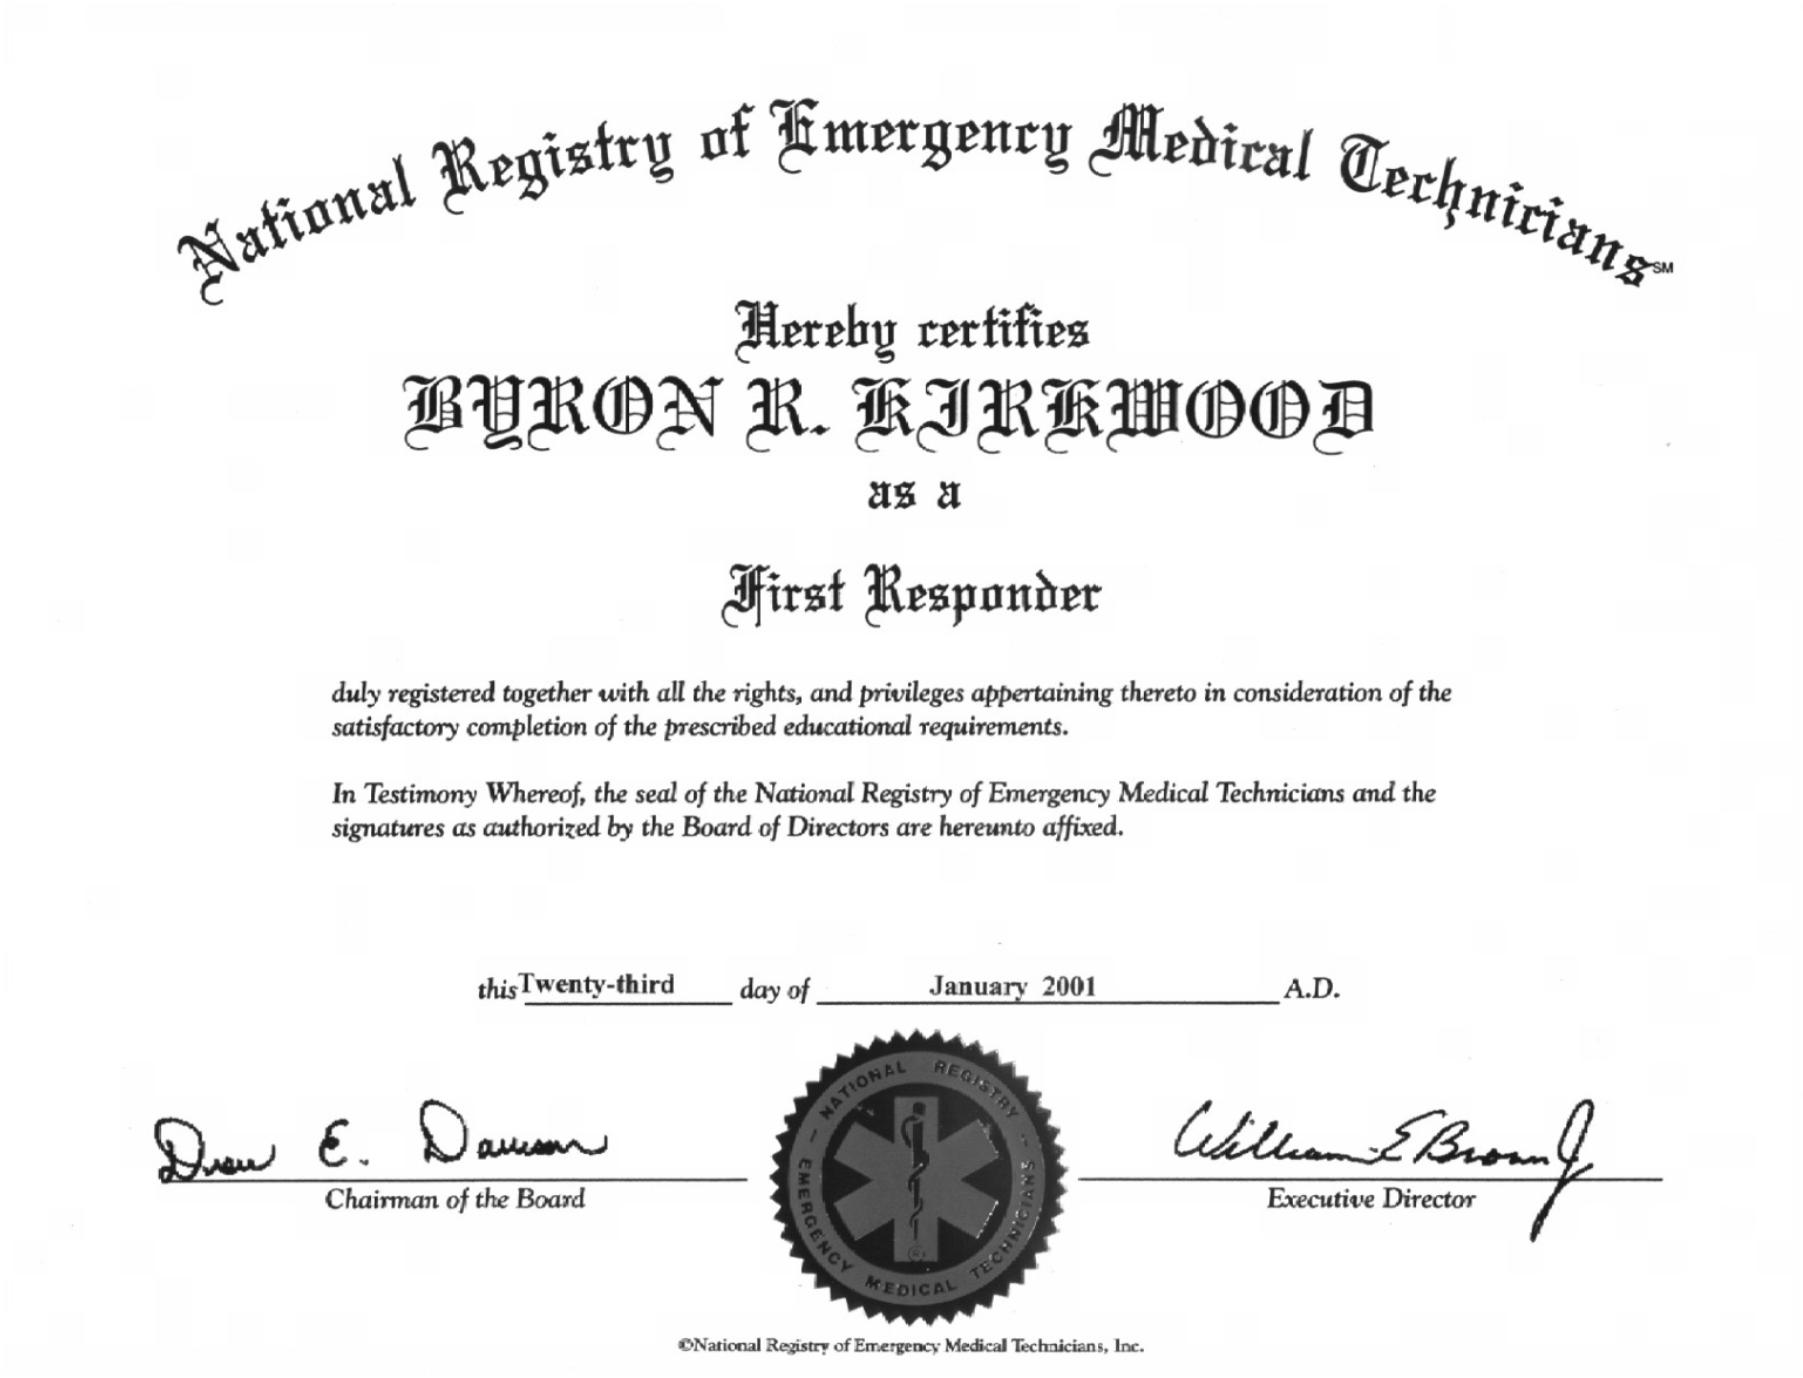 First Responder certificate